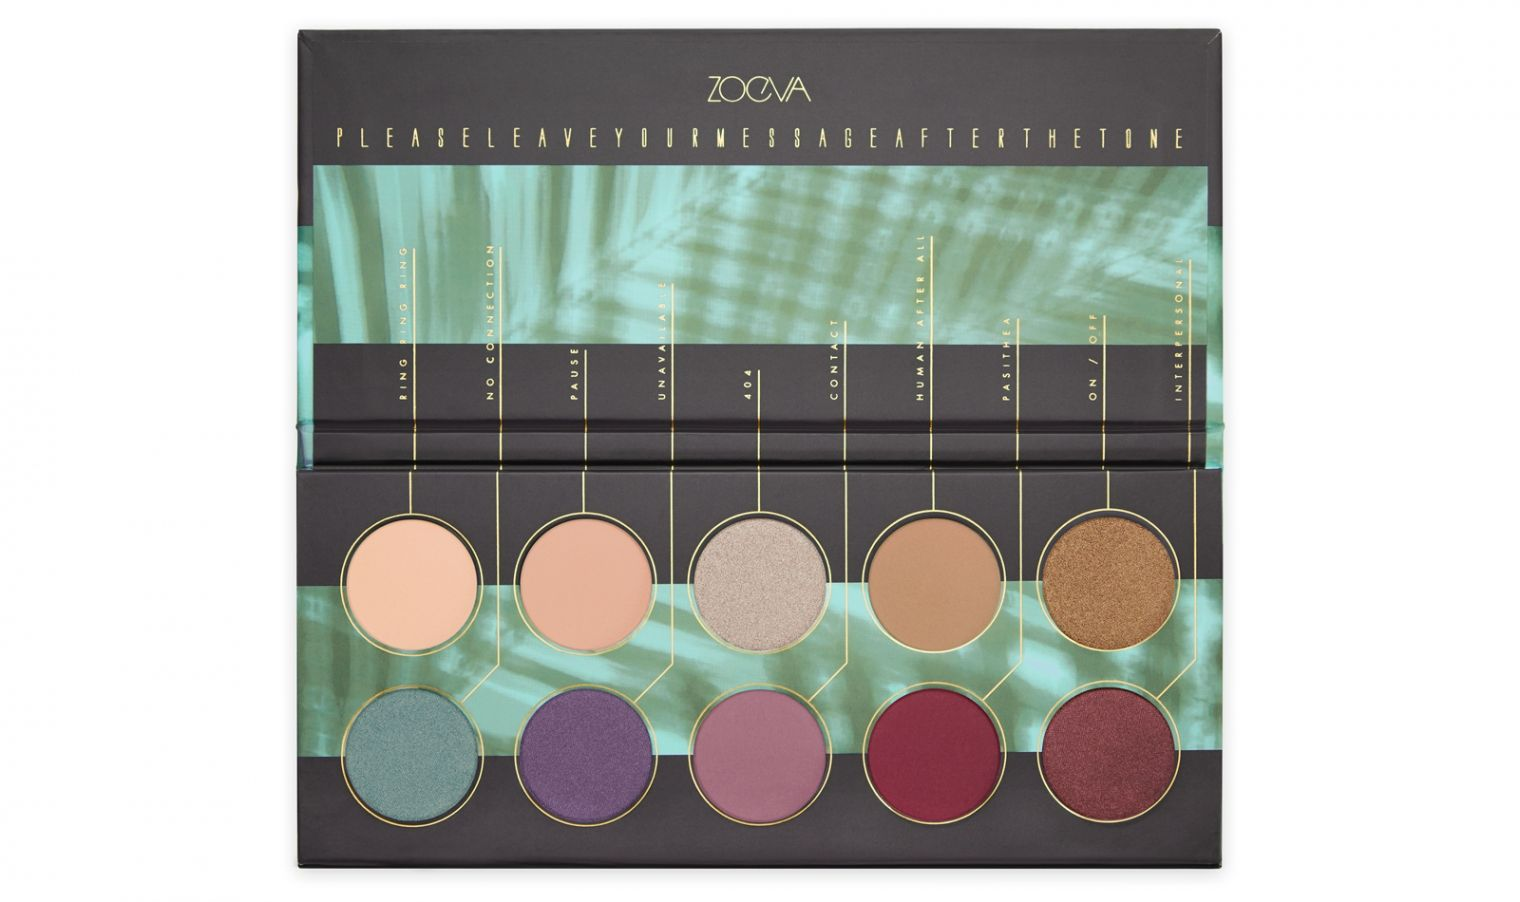 ZOEVA Eyeshadow Palette with 10 highly pigmented